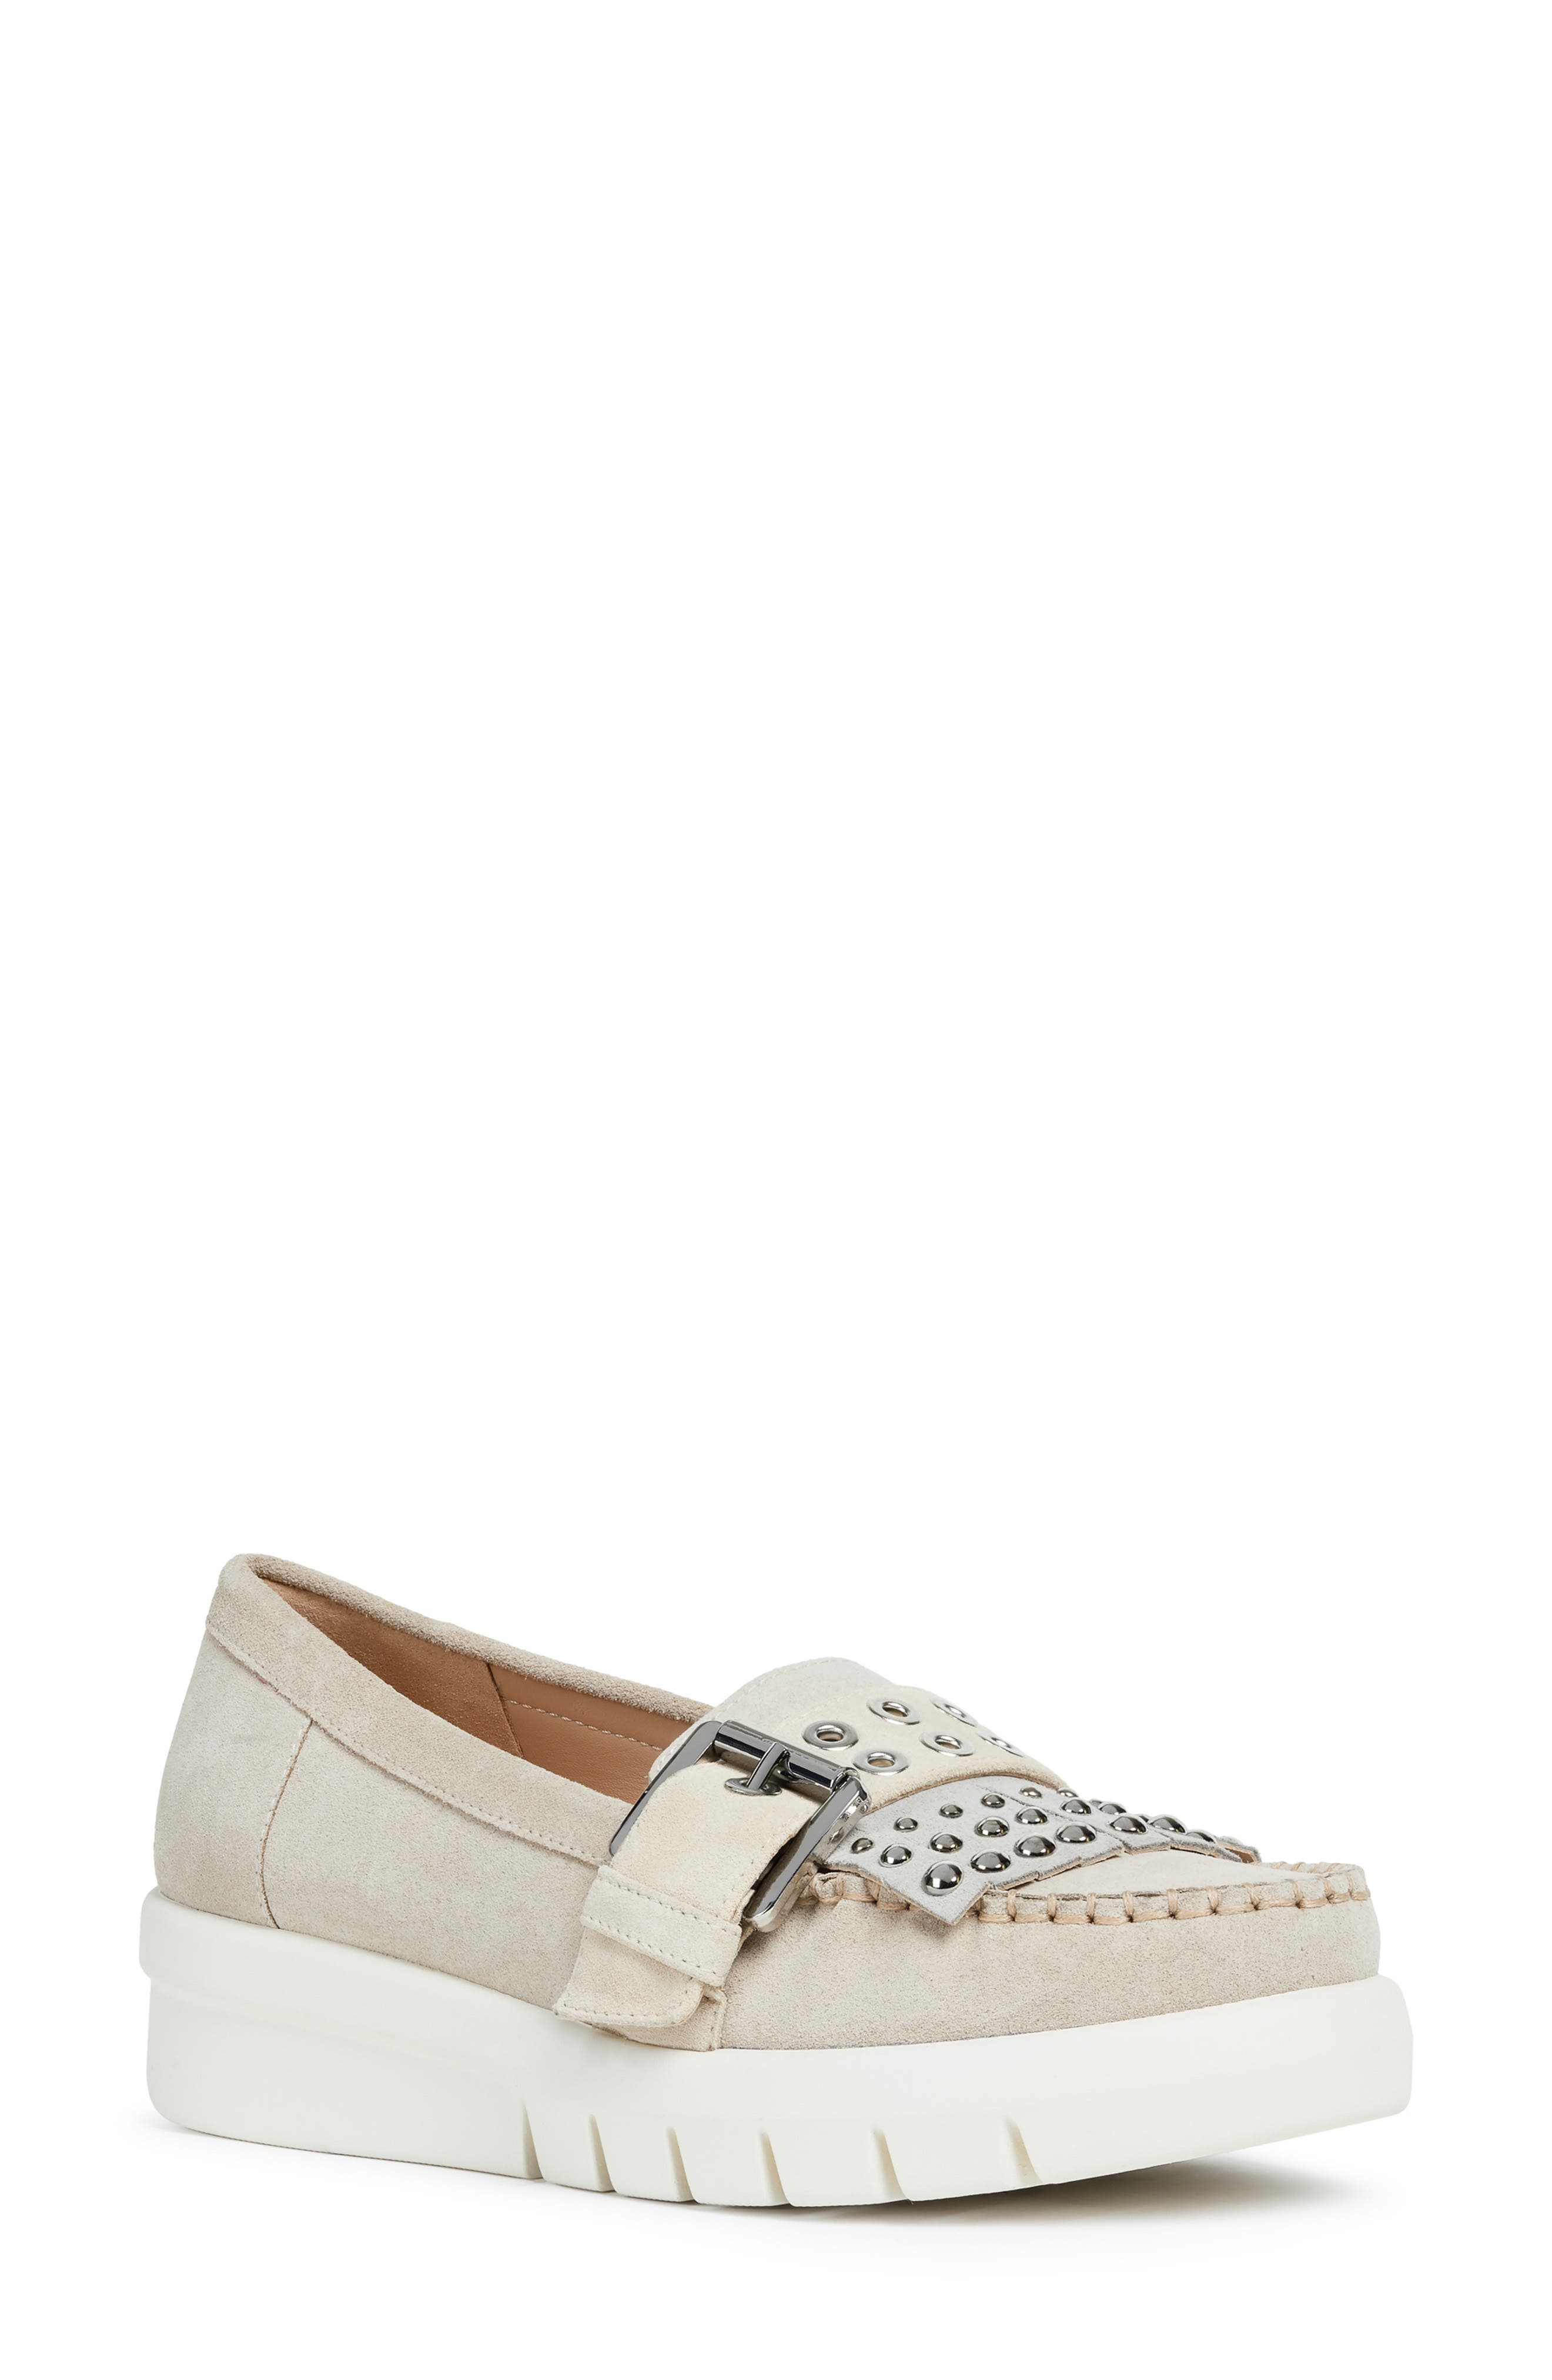 GEOX Wimbley Studded Kiltie Loafer, Main, color, LIGHT TAUPE/ GREY SUEDE